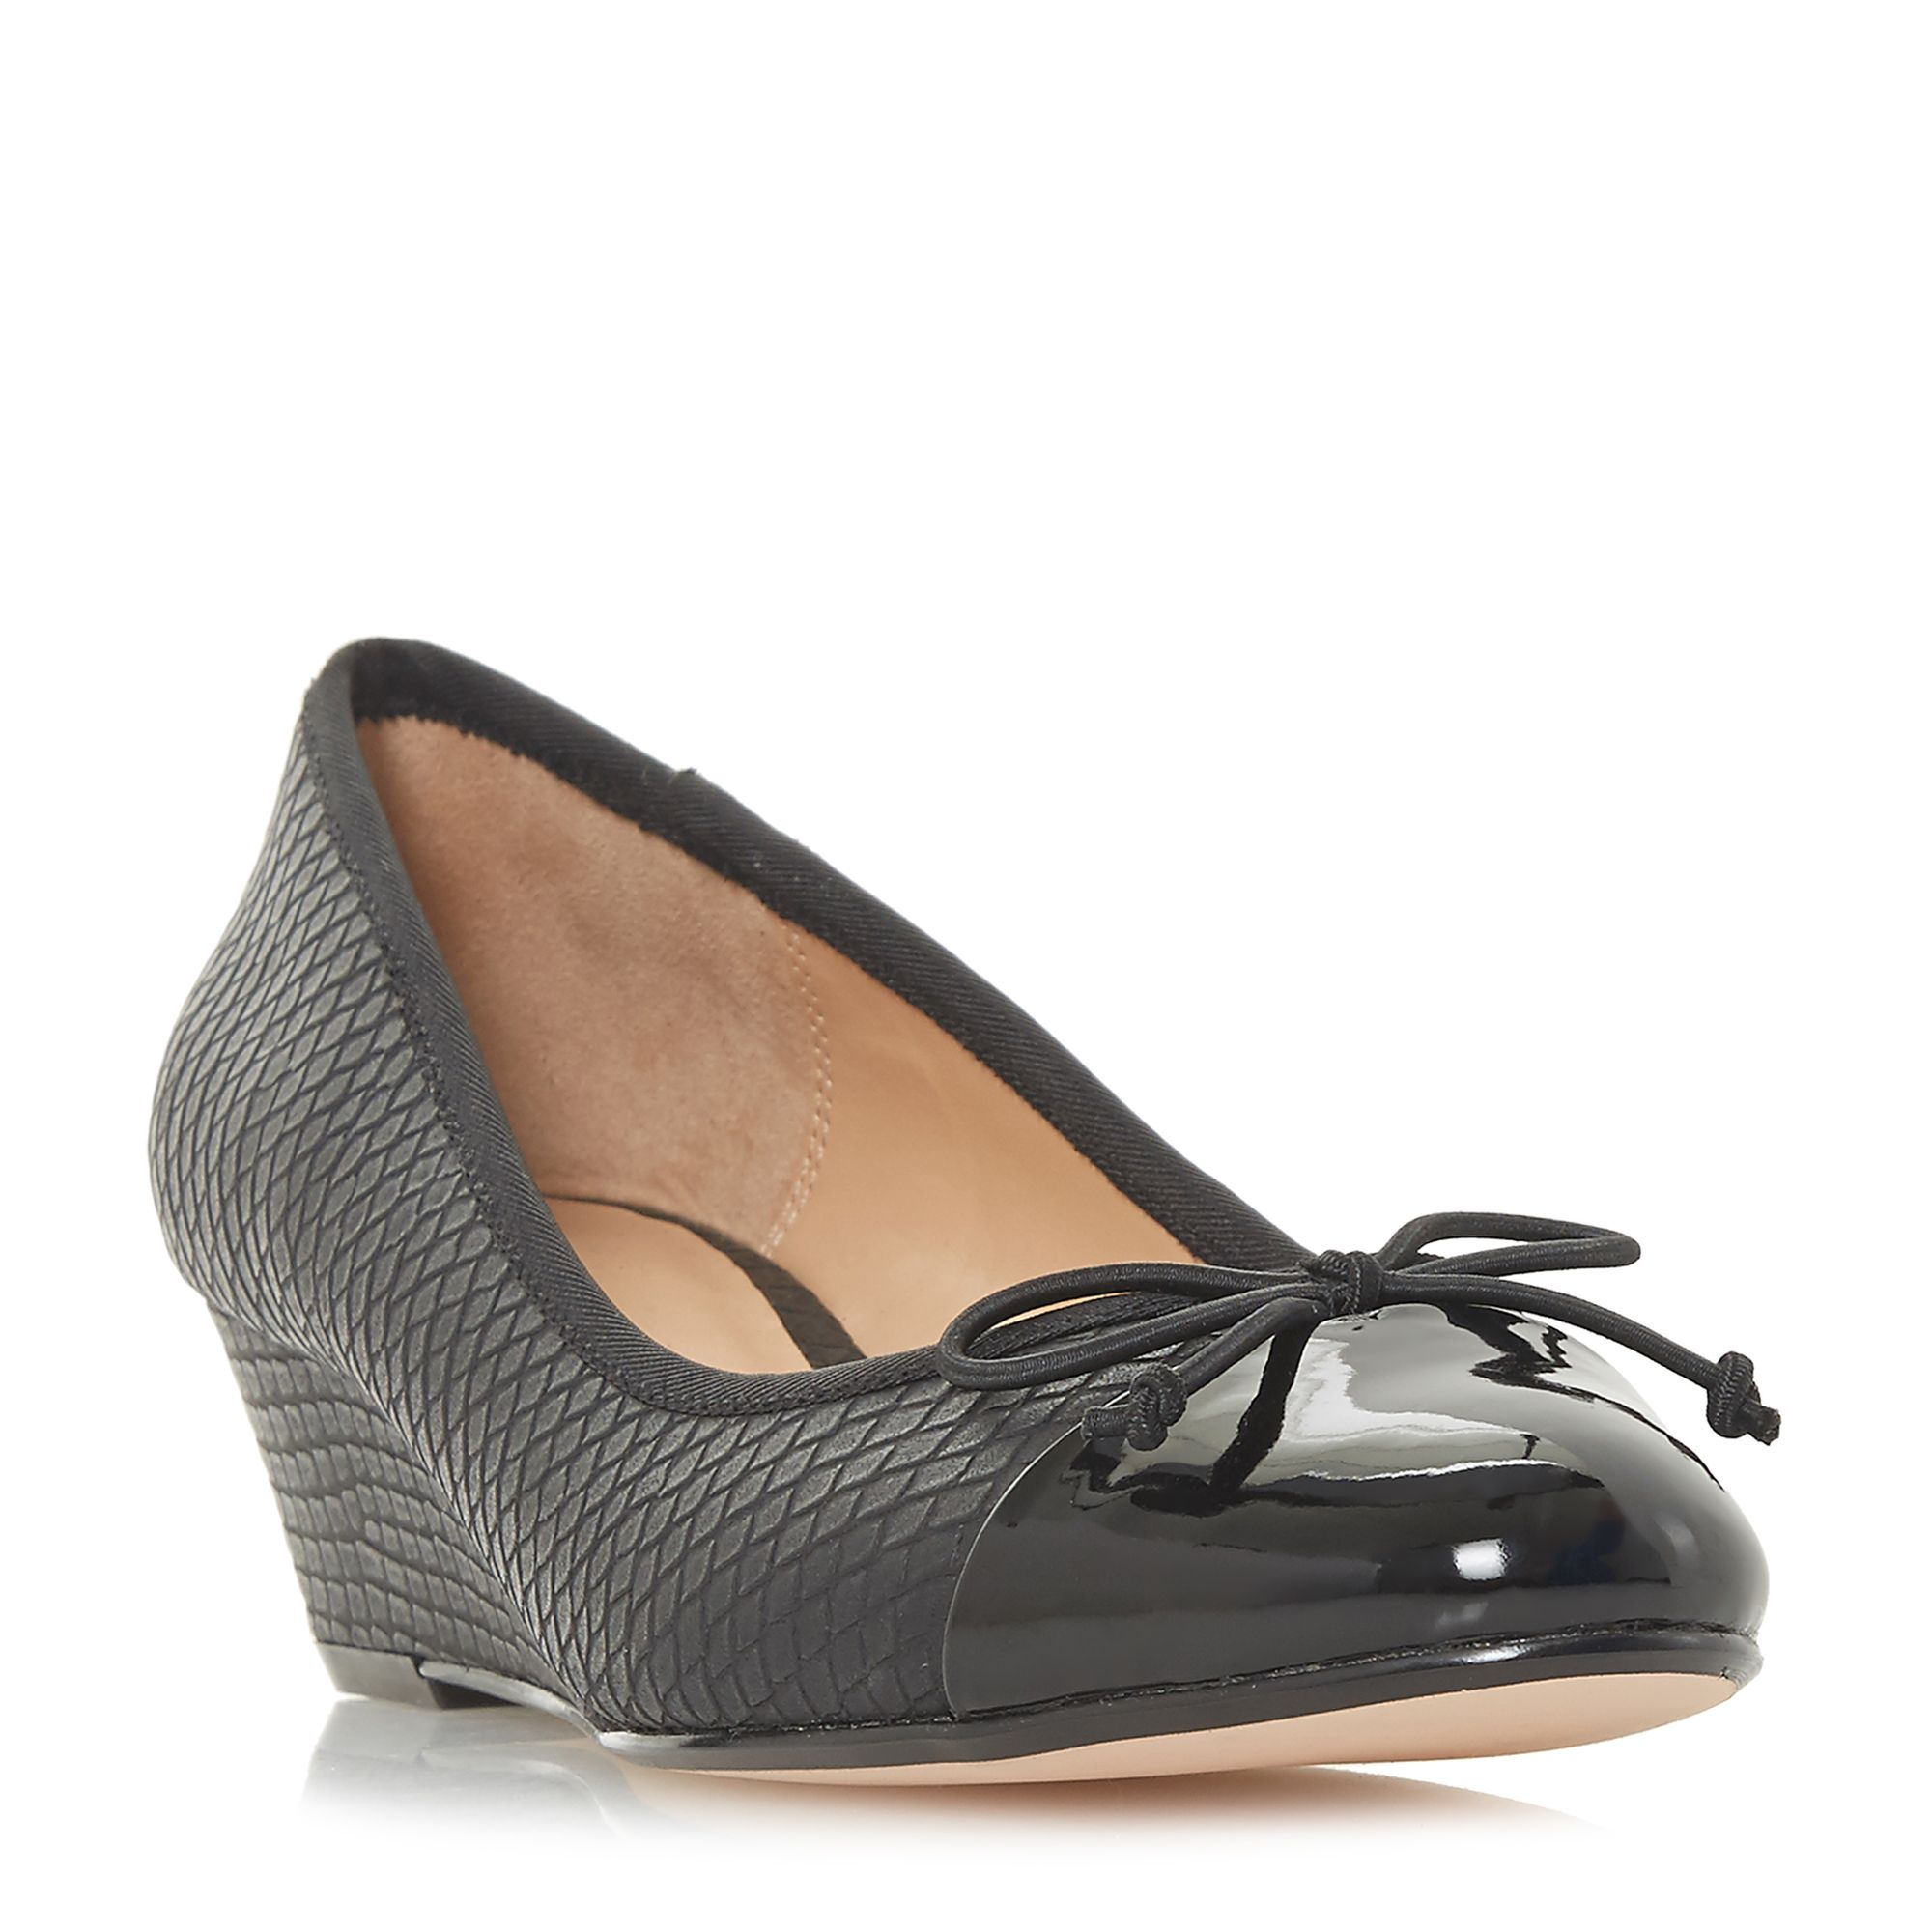 Linea Alissy Reptile Wedge Court Shoes, Black